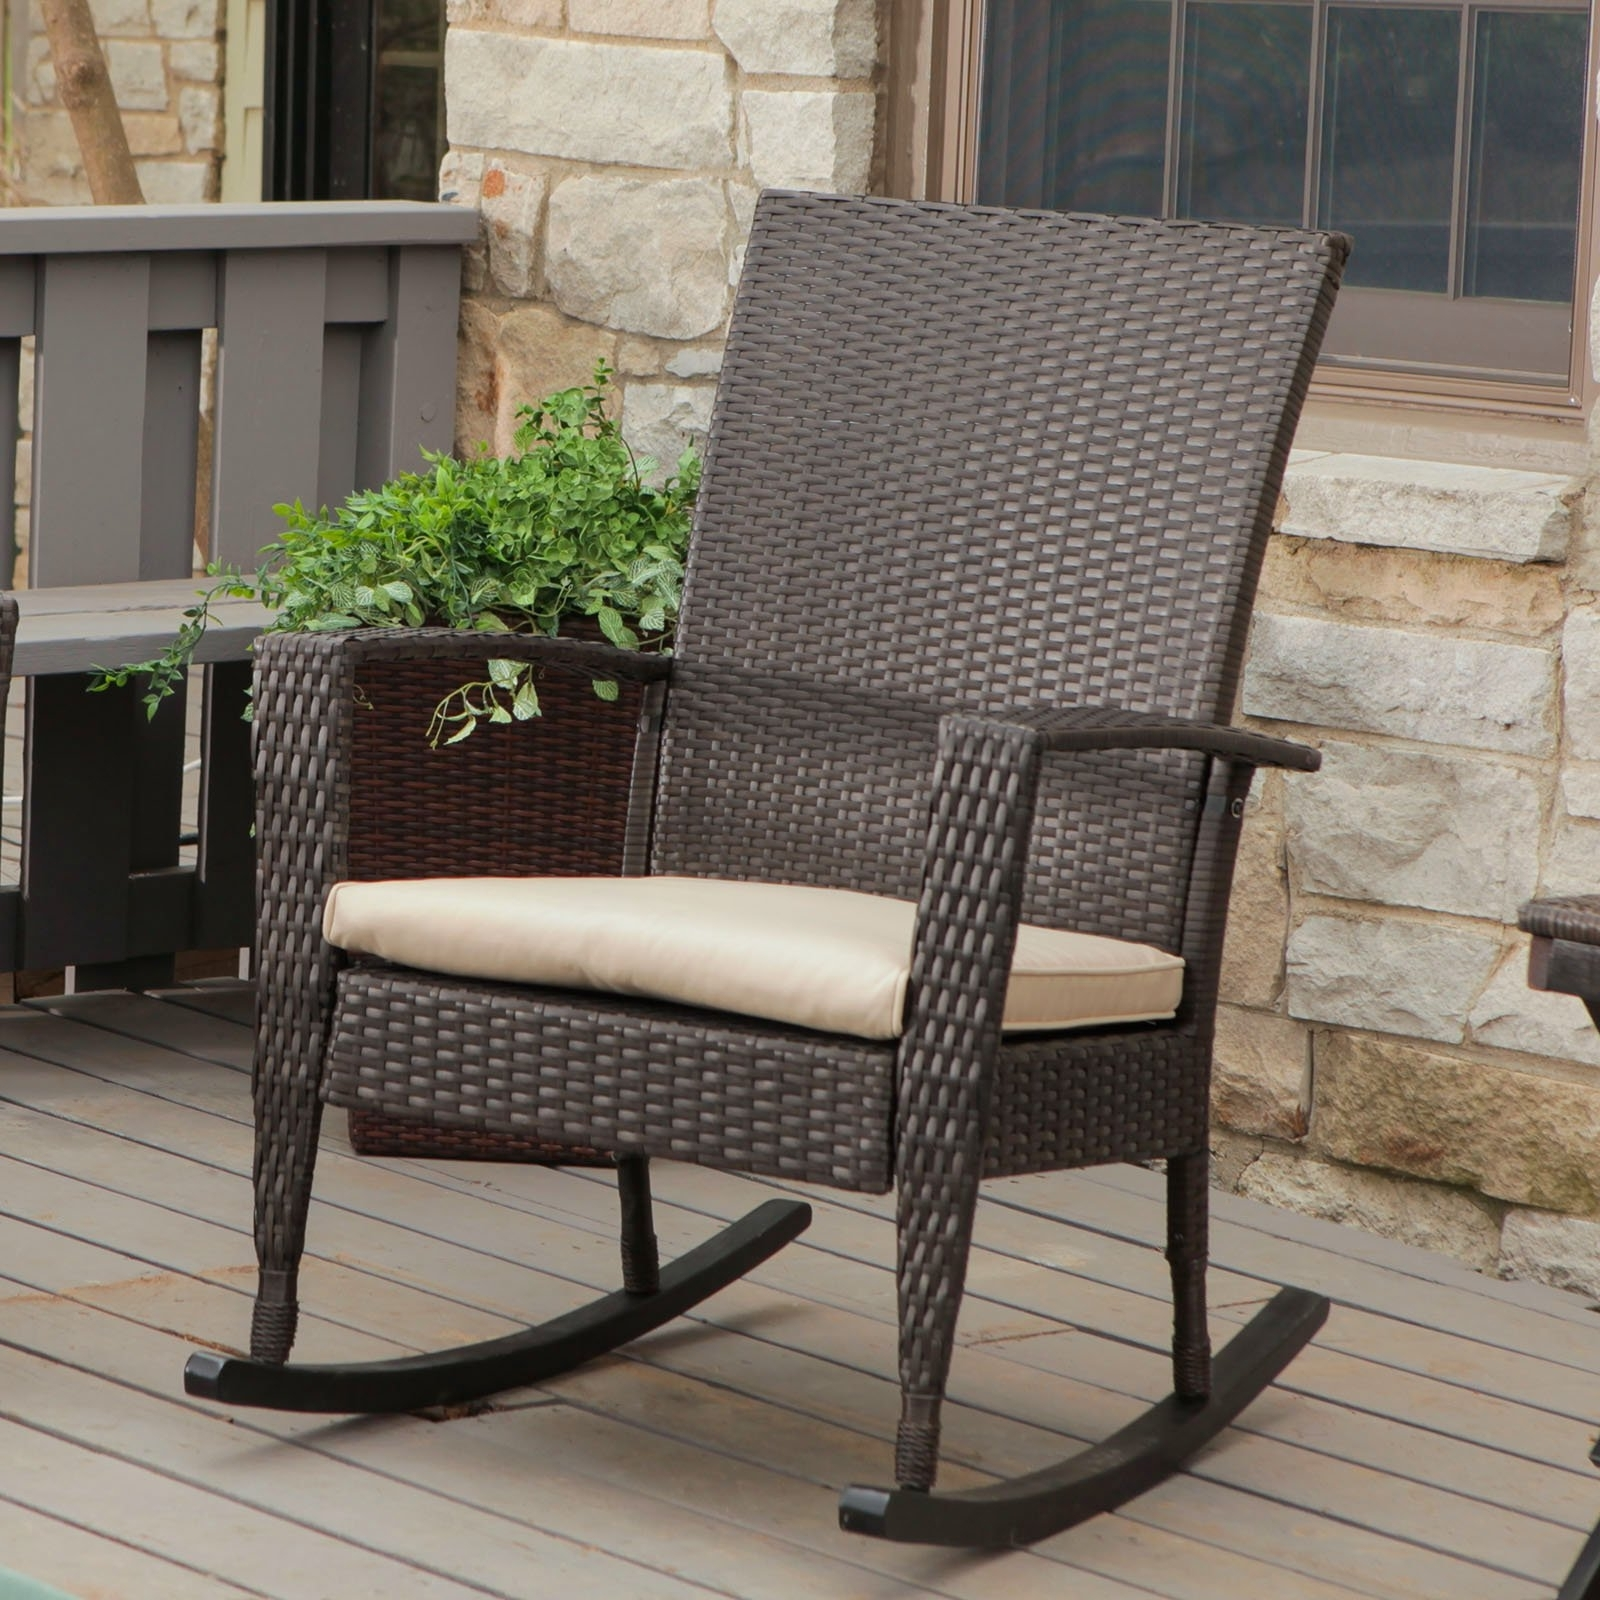 Famous Outside Rocking Chair Sets Pertaining To Decorating Modern Lawn Chairs Modern Balcony Furniture Modern Patio (View 3 of 15)